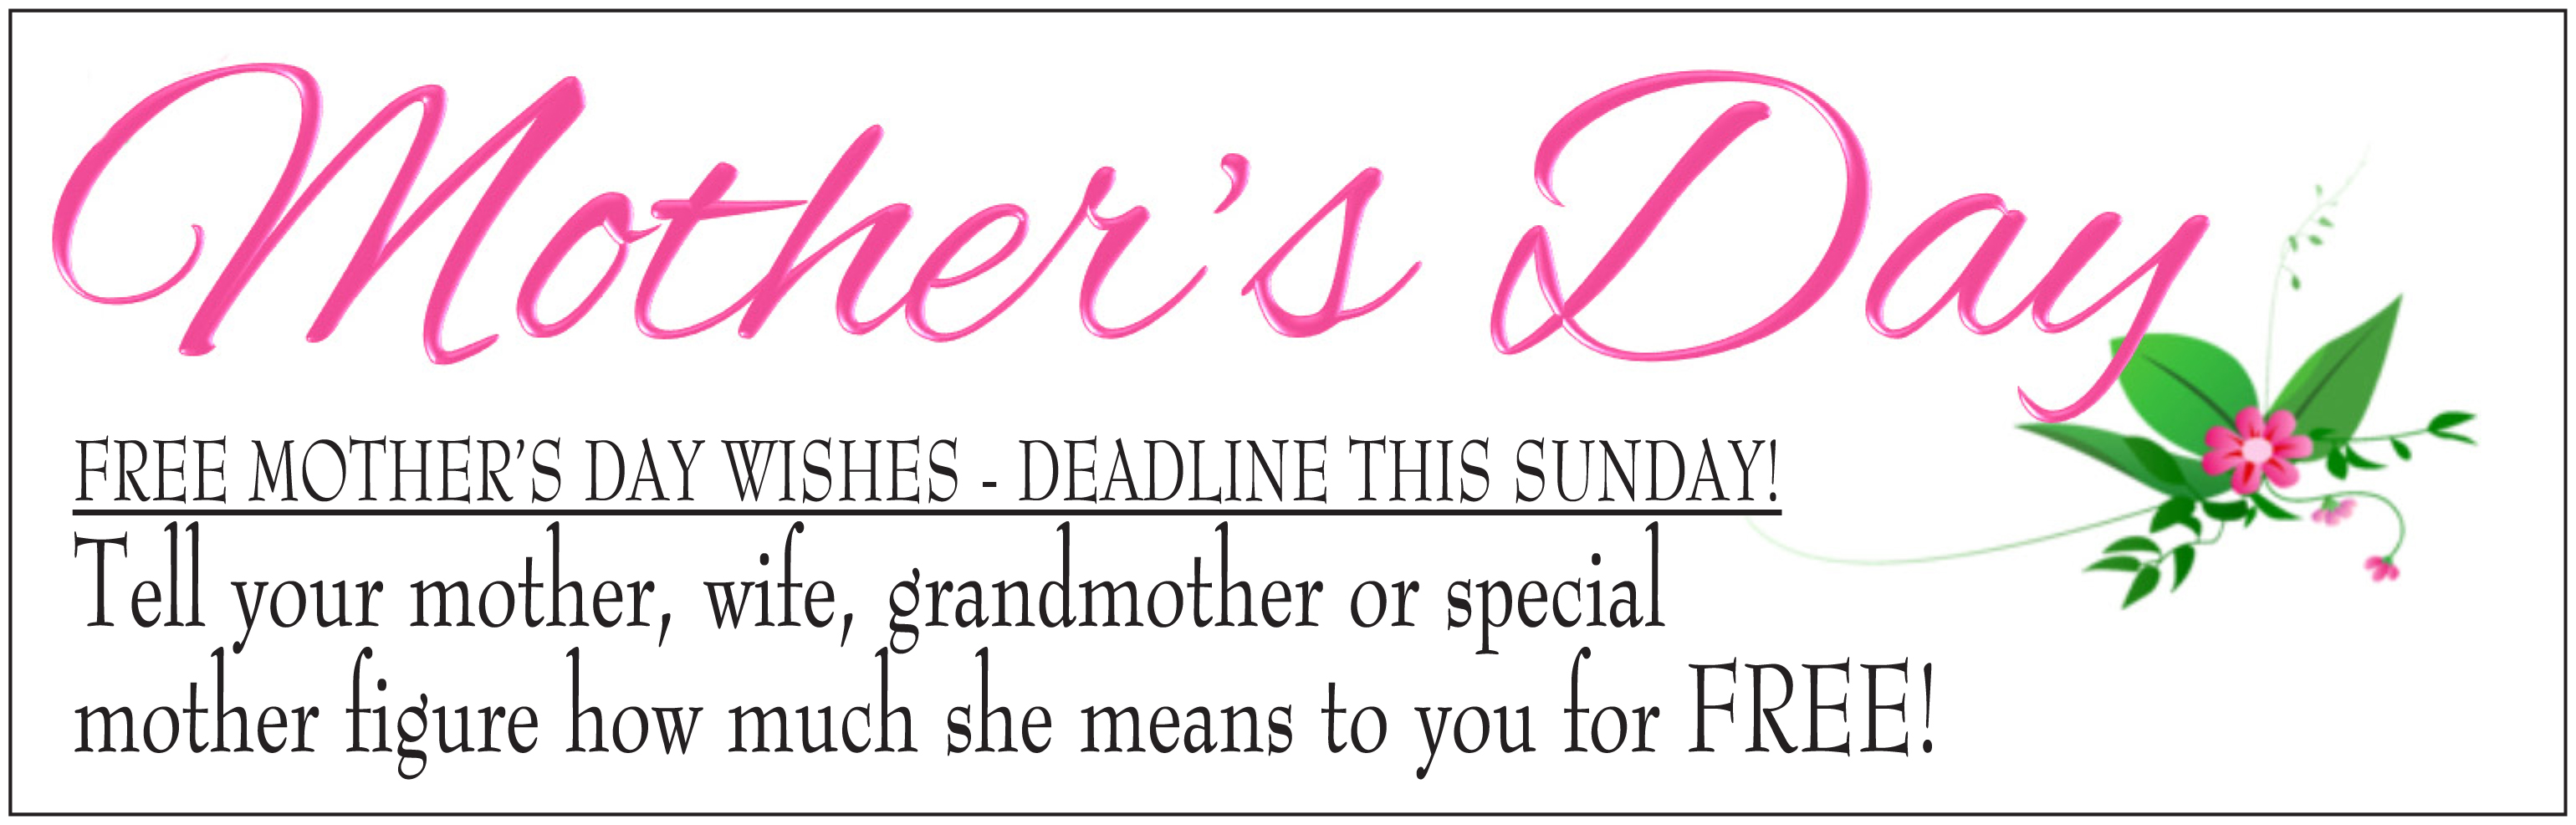 010 Mothers Day Wishes Essay Top In Kannada Contest Mother's Telugu Full